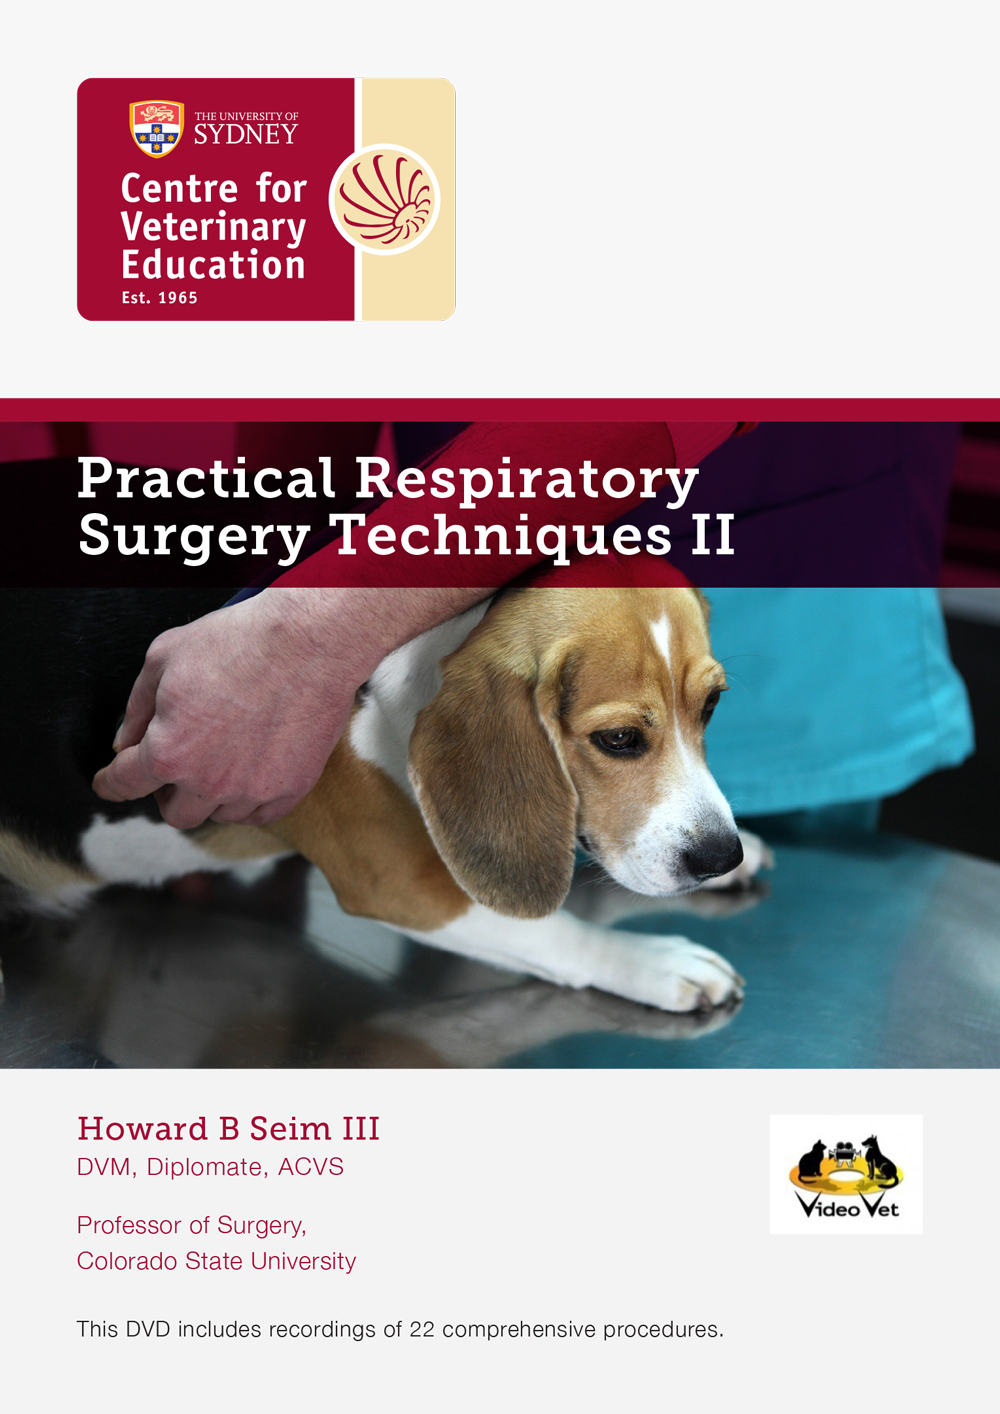 Practical Respiratory Surgery Techniques II